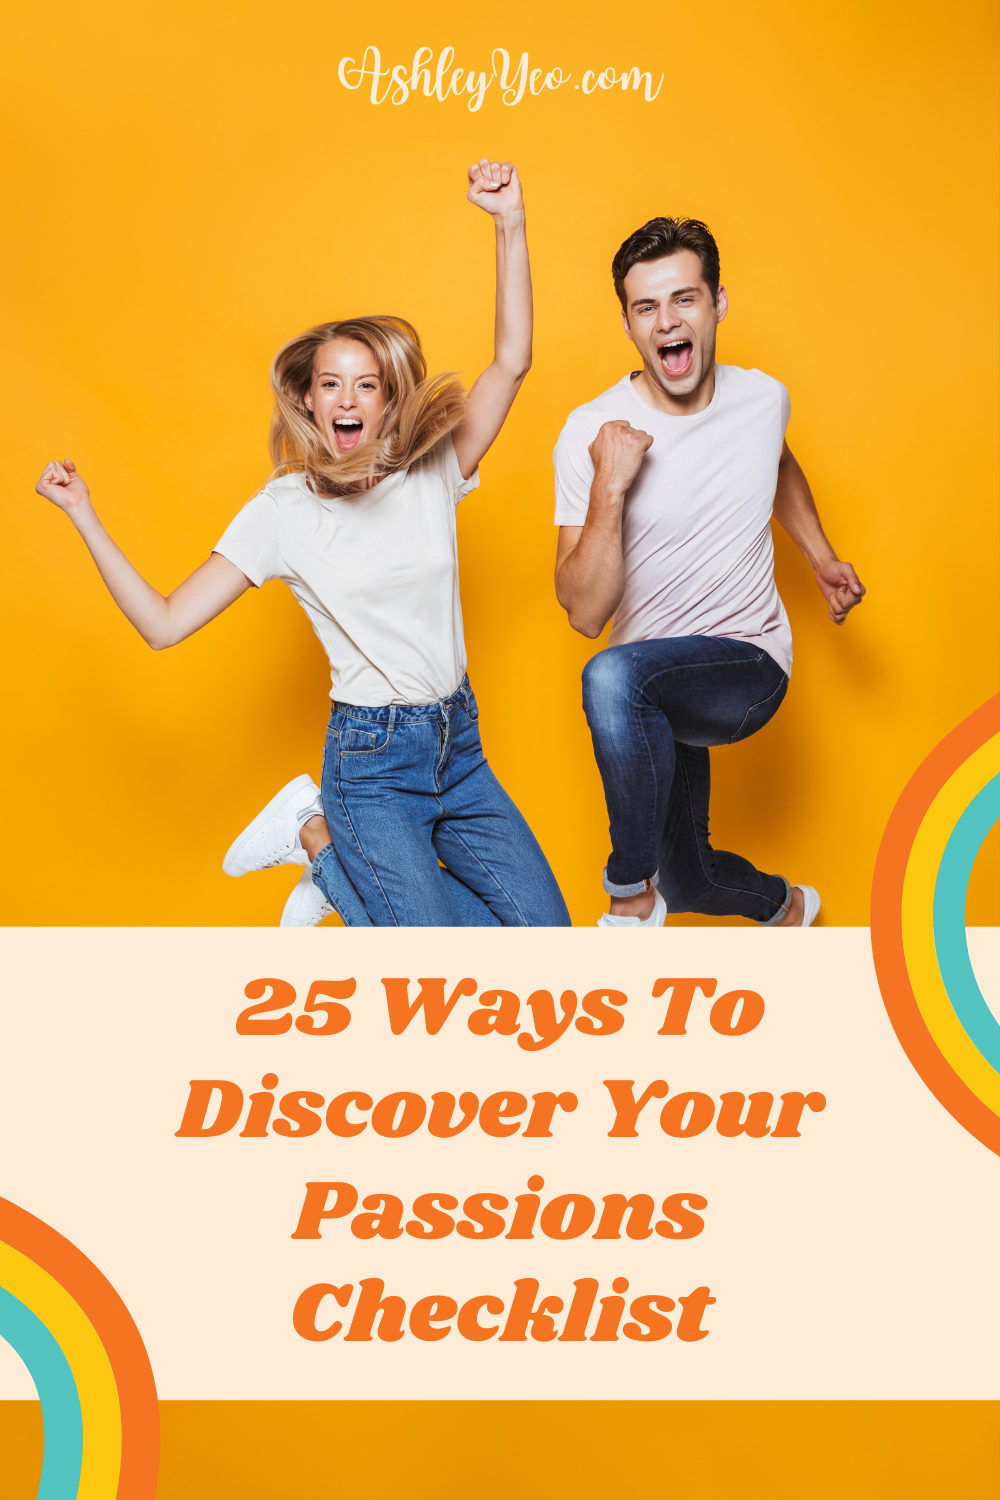 25 Ways To Discover Your Passions